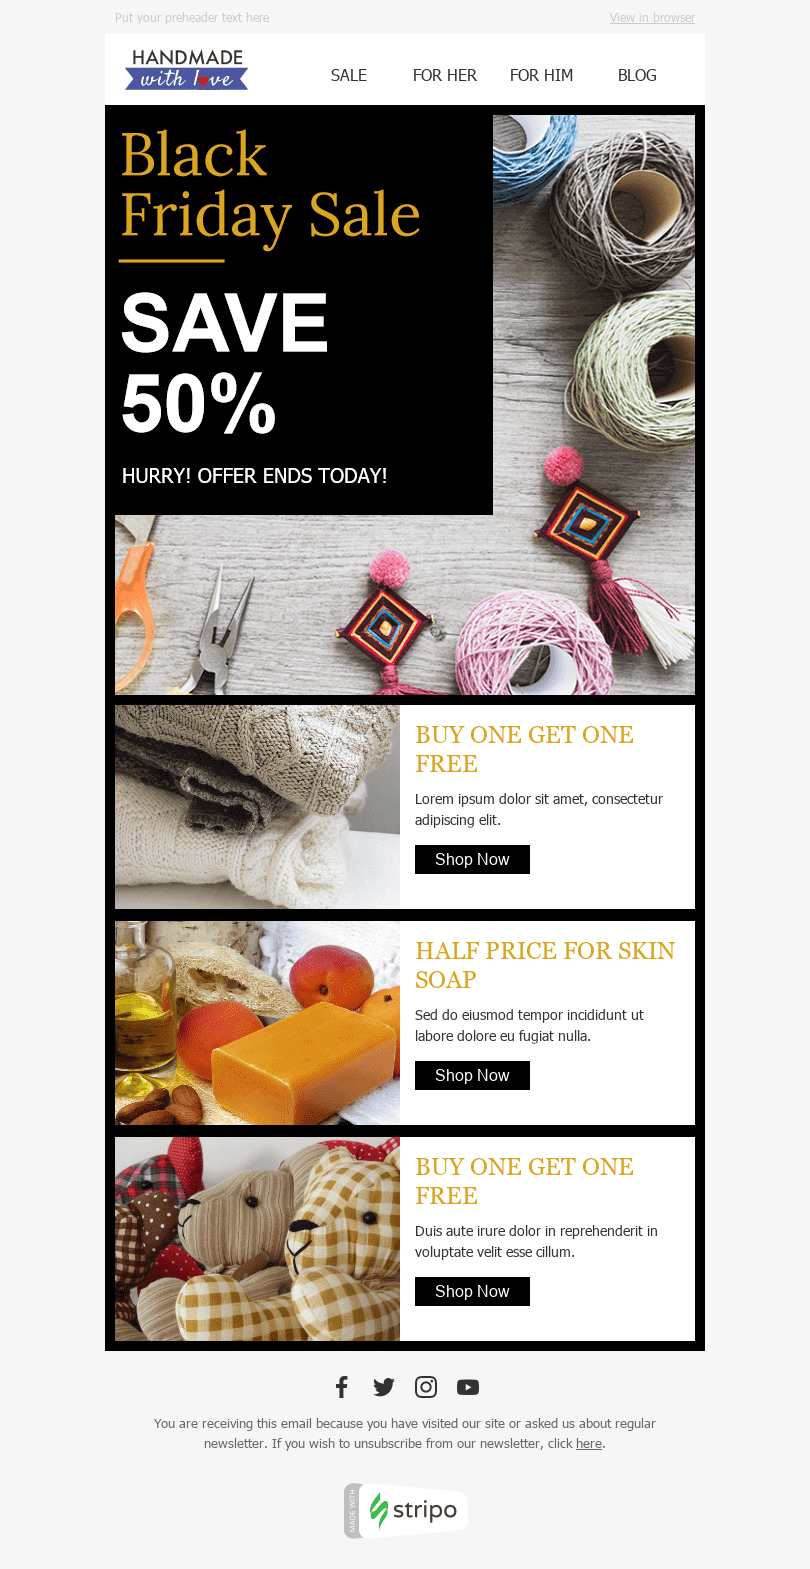 Stripo Books Presents Stationery Holiday newsletter Black Friday Weekend Sale email web